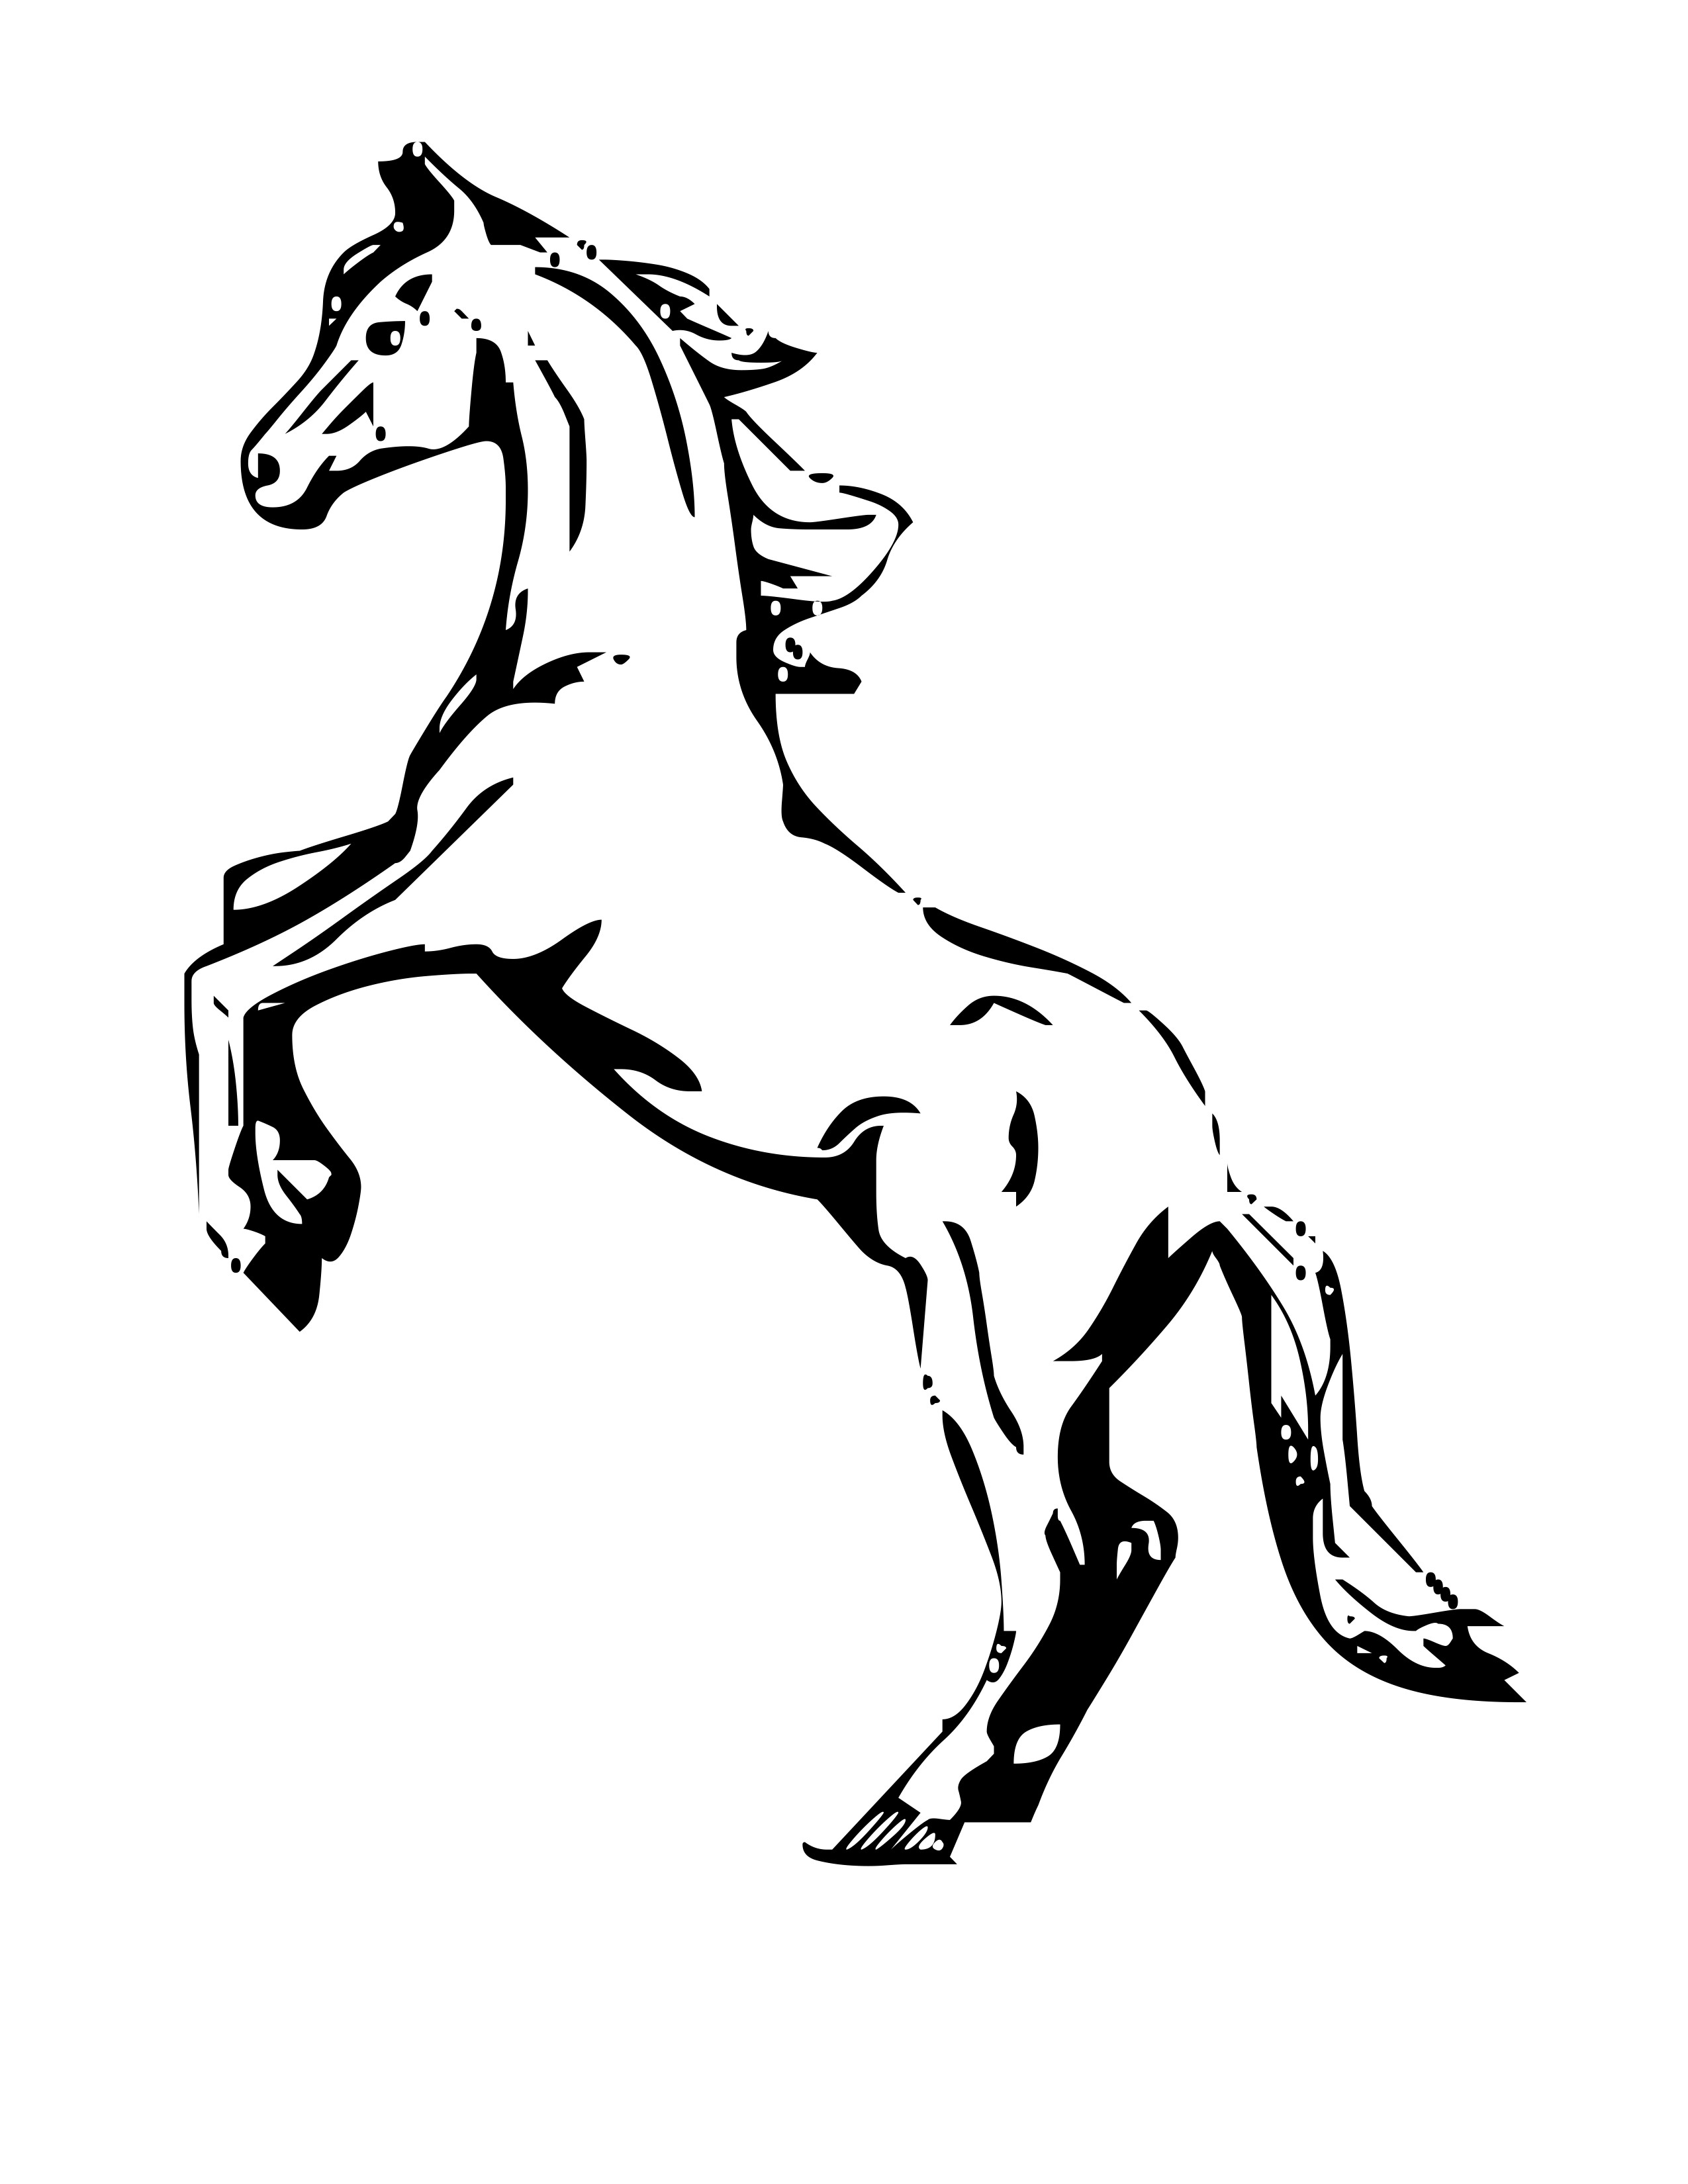 coloring images horse coloring page toy horse coloring images horse